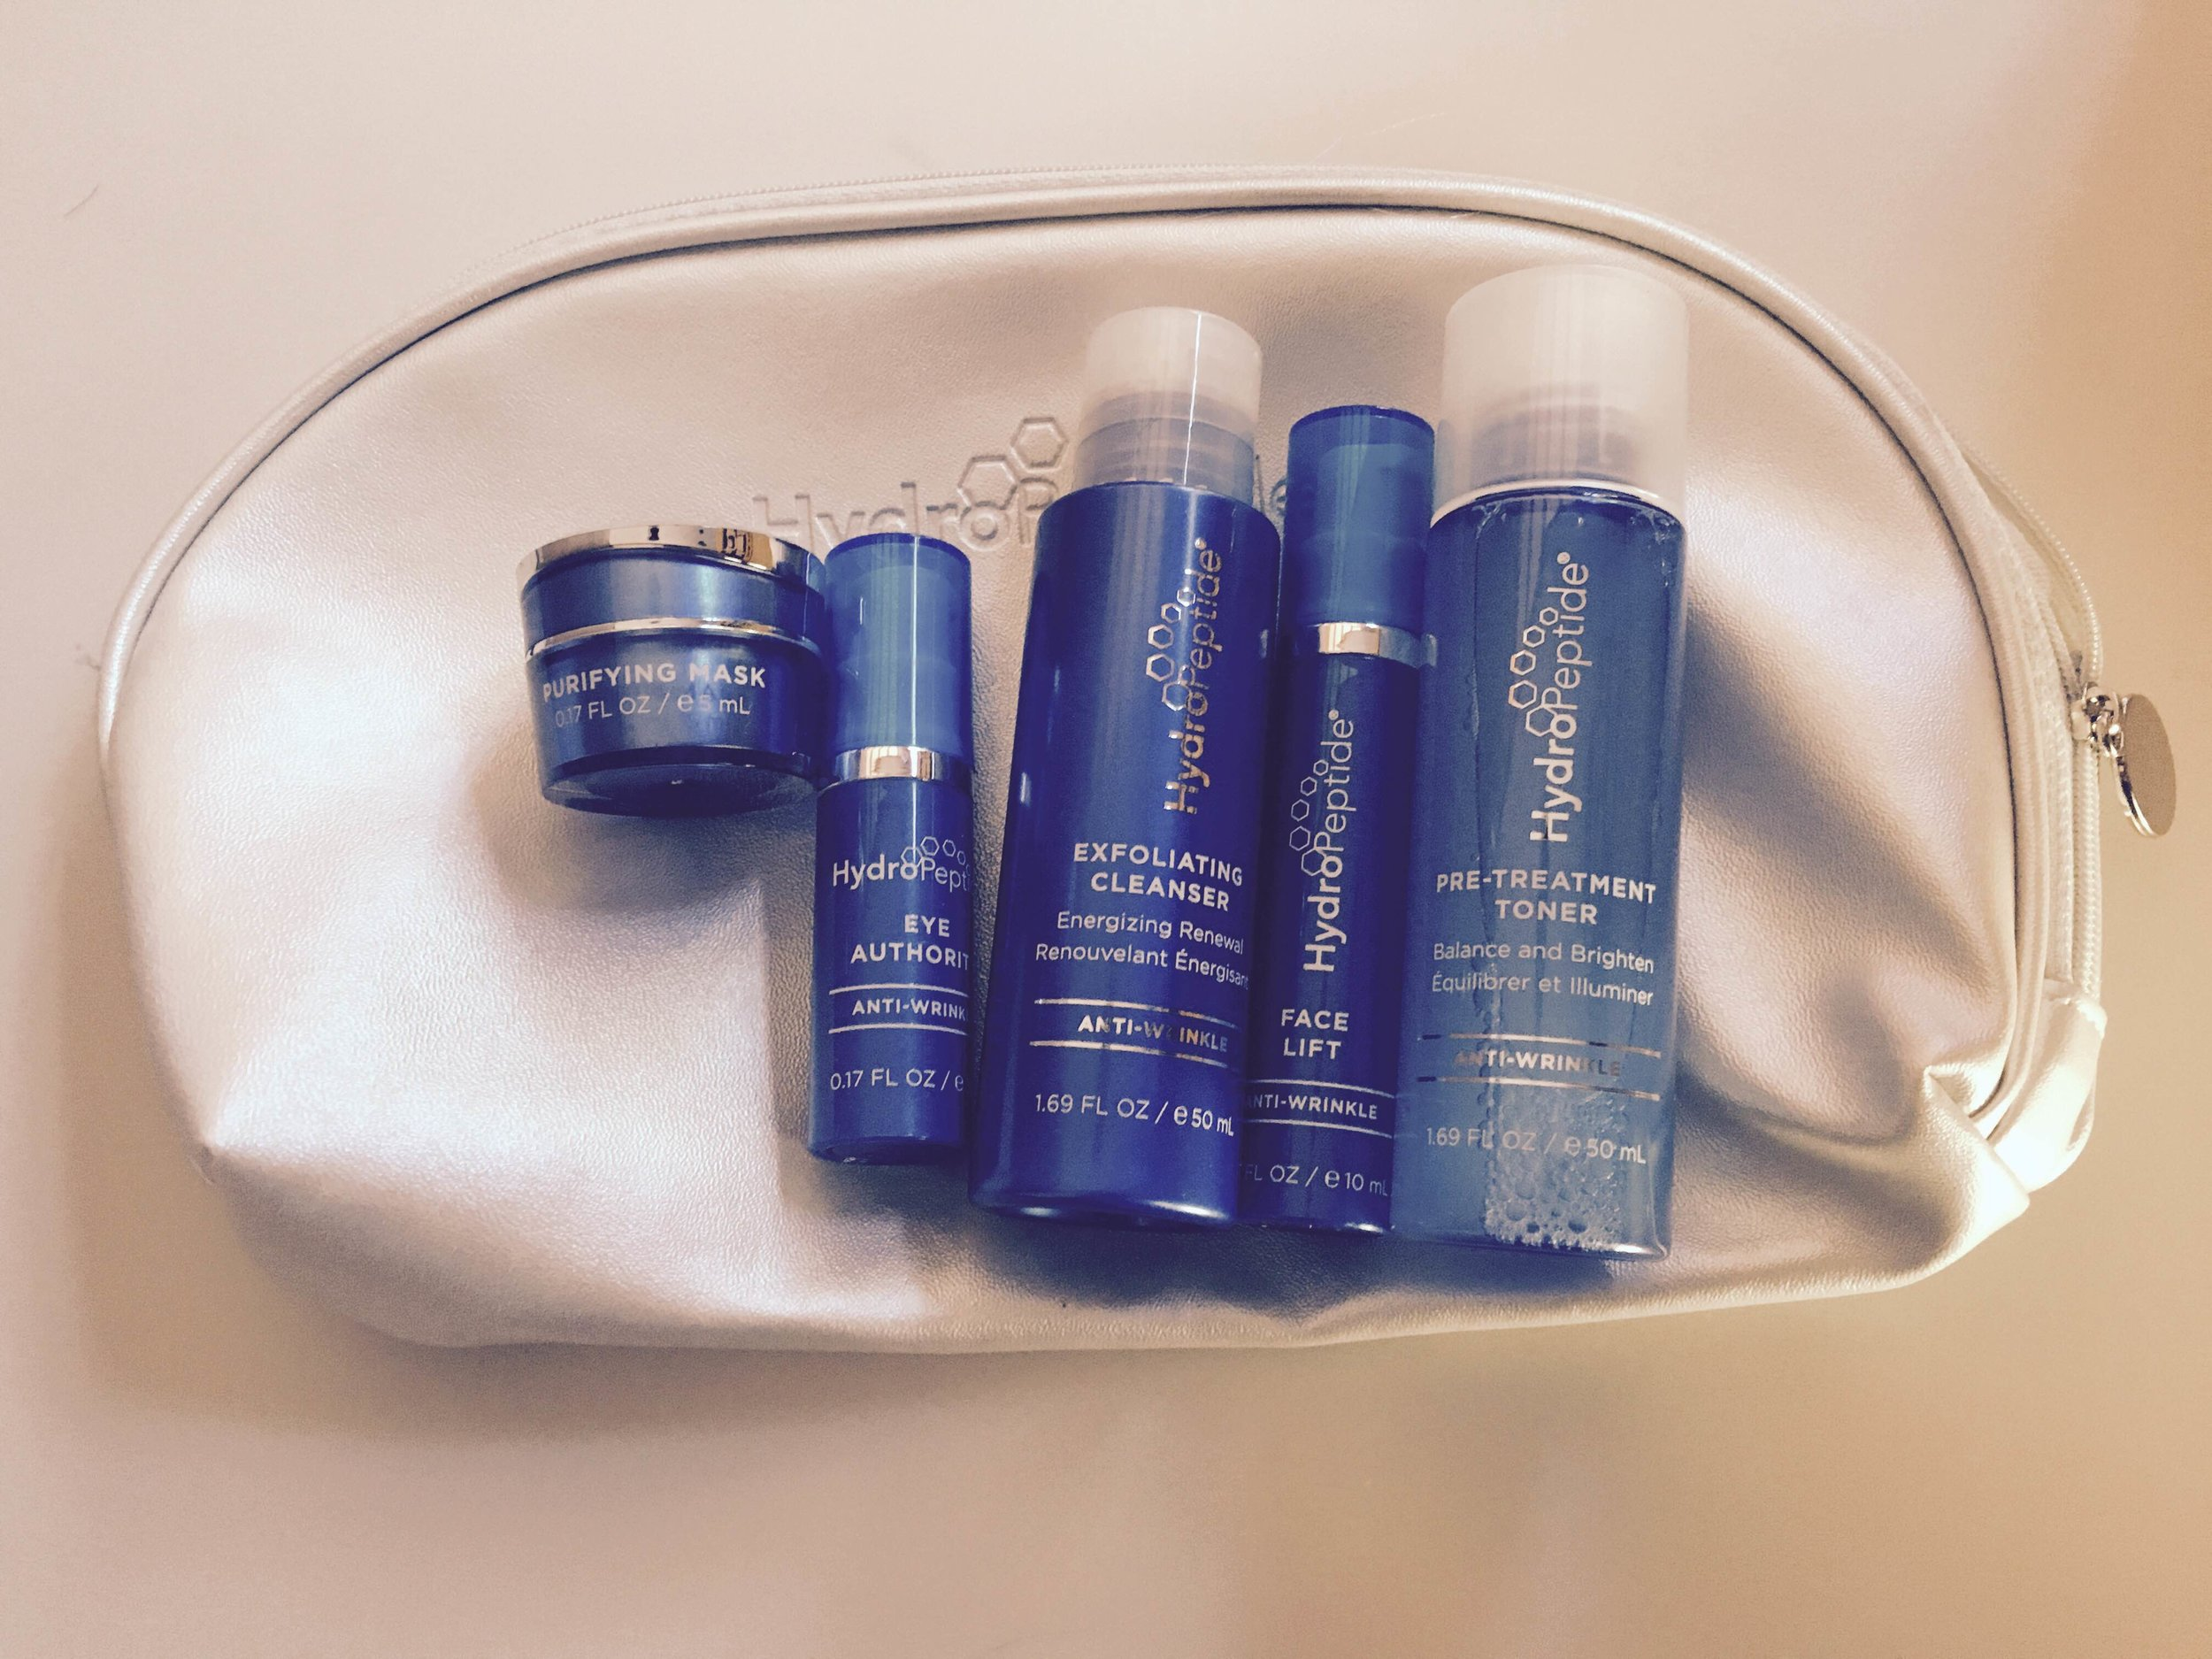 This anti-age on-the-go skincare regimen is going to be the perfect companion on my honeymoon to Santorini, Greece! Love the products and the way they make my skin feel.